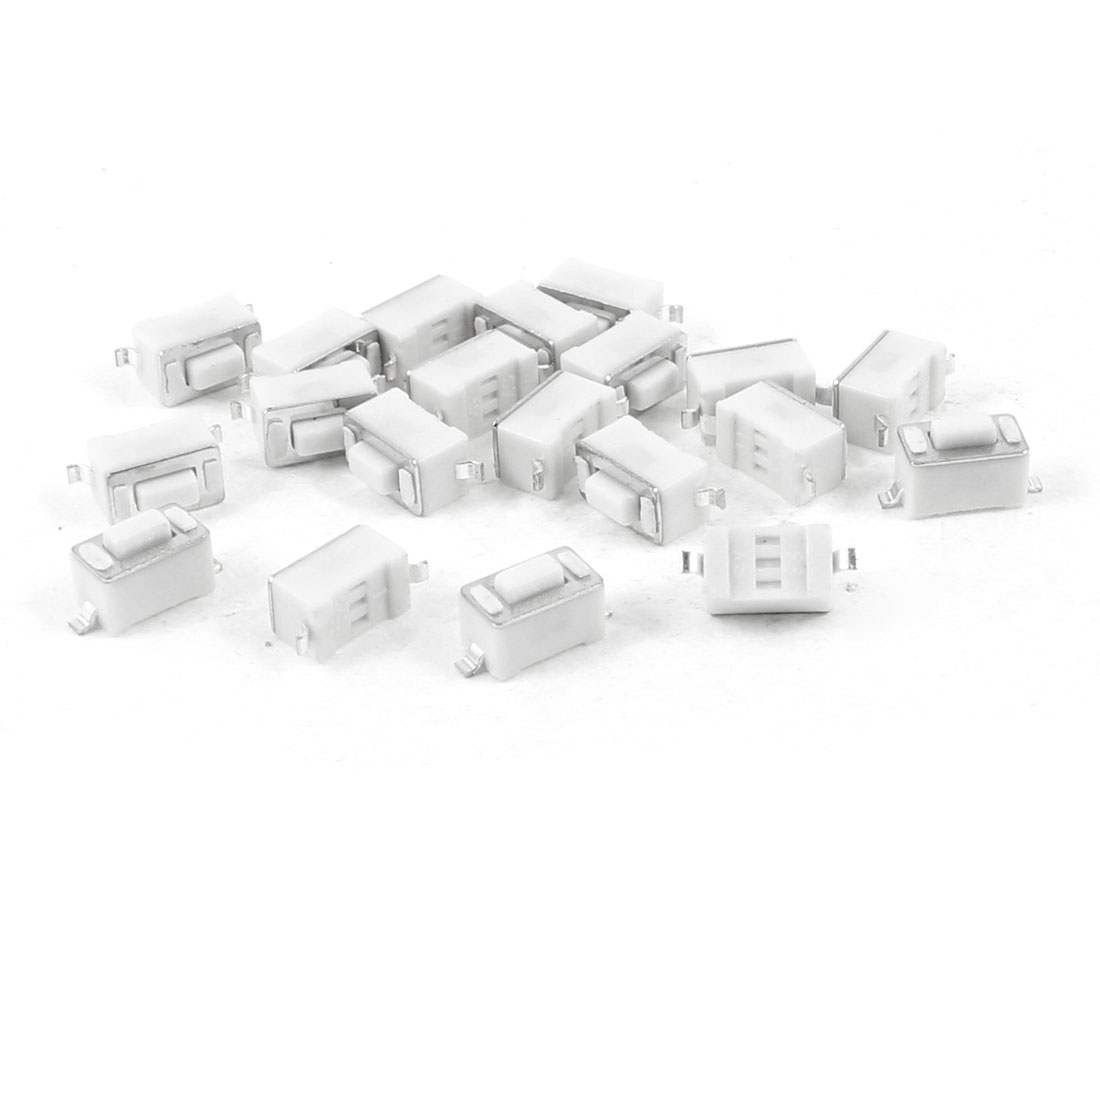 20pcs-6x3-5x4-3mm-2-Pin-SPST-Momentary-Pushbutton-Panel-PCB-Mini-Tactile-Switch